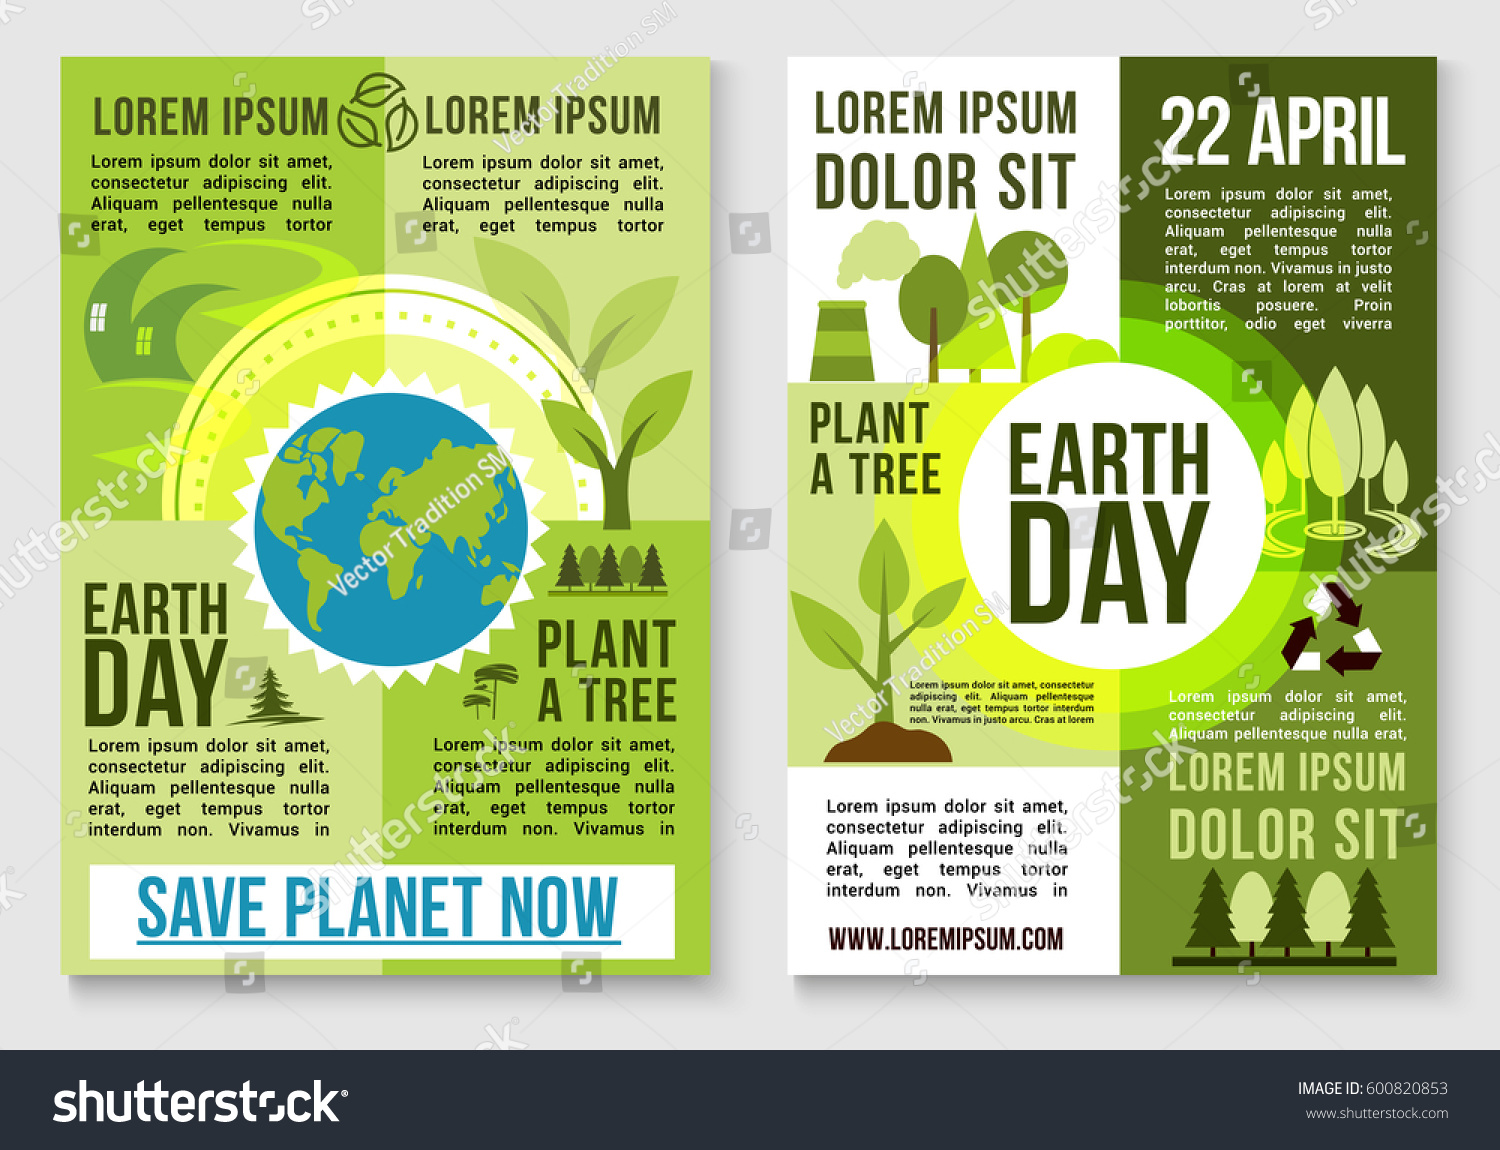 Poster design on save earth - Save Earth And Plant Trees Design For 22 April Earth Day Event Nature Environment Conservation